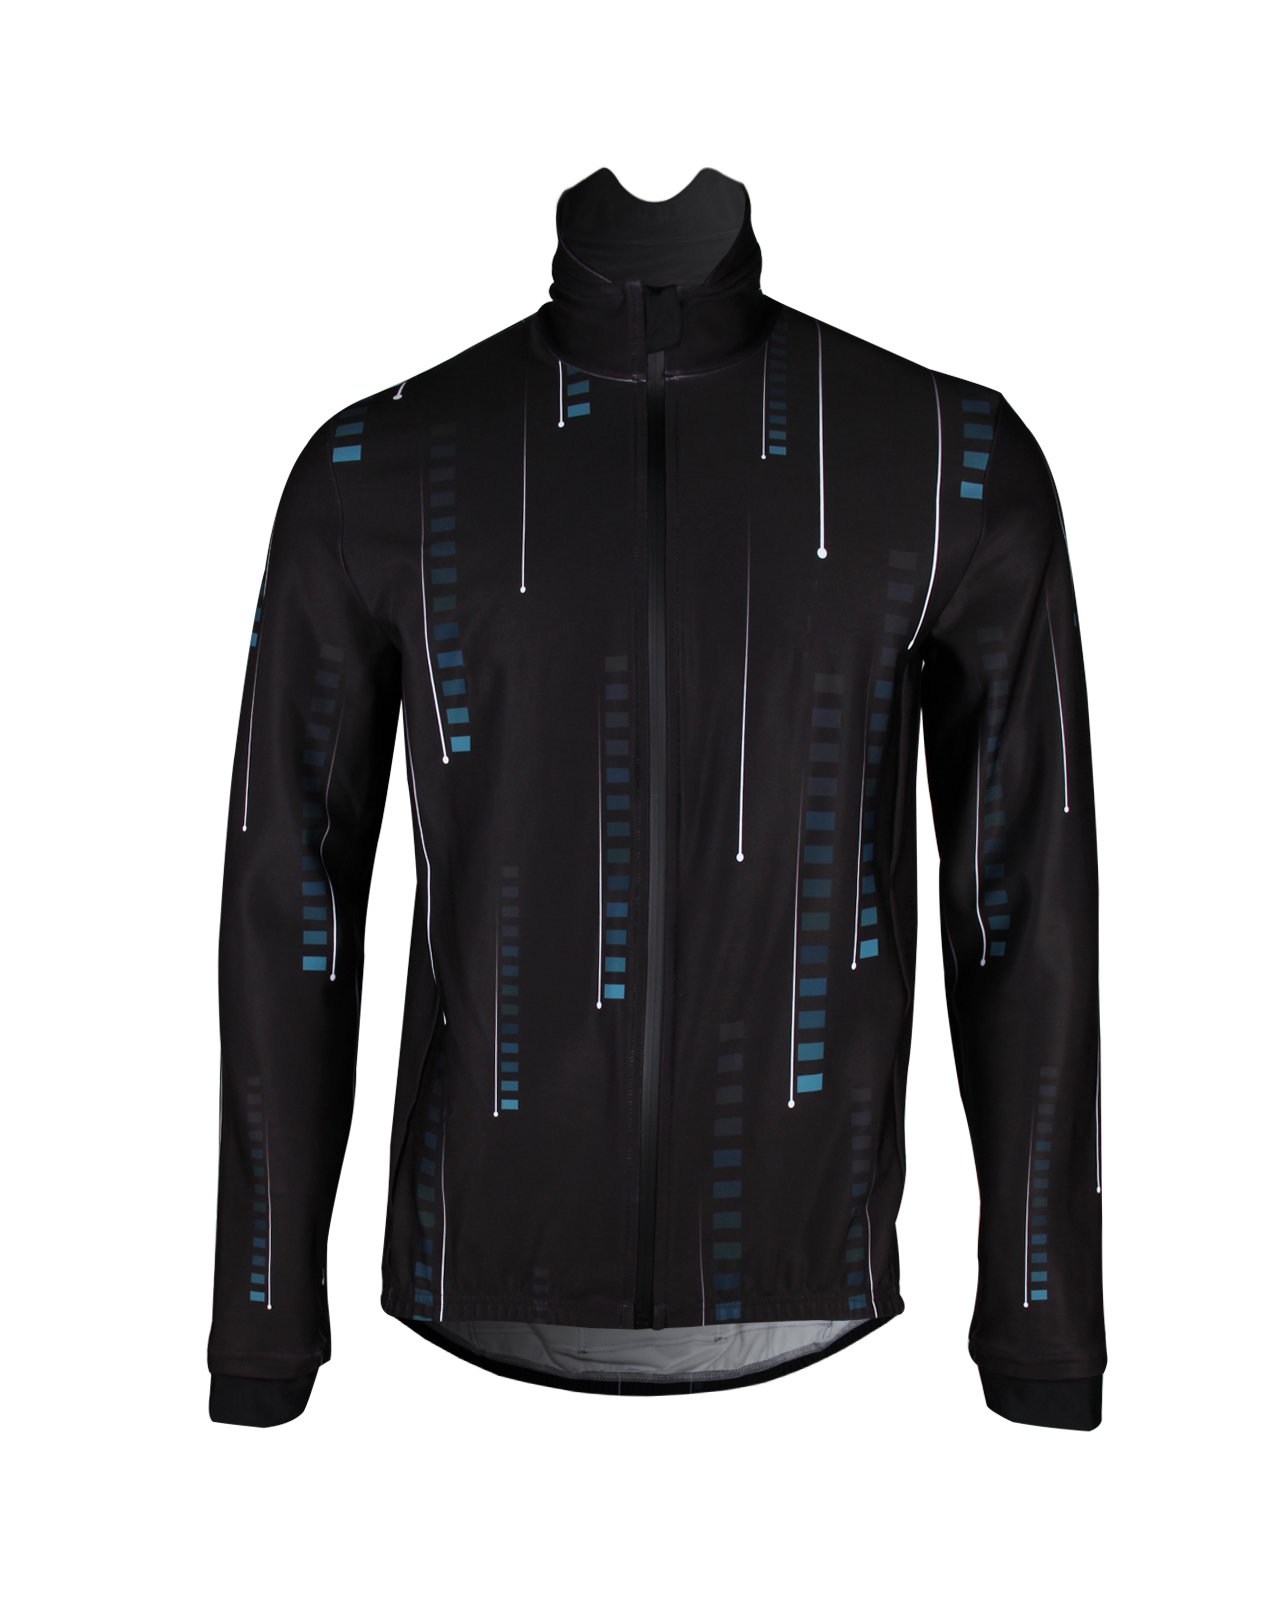 Italian HYDRO ALPINE Thermal Windproof and Water repellent Cycling Jacket